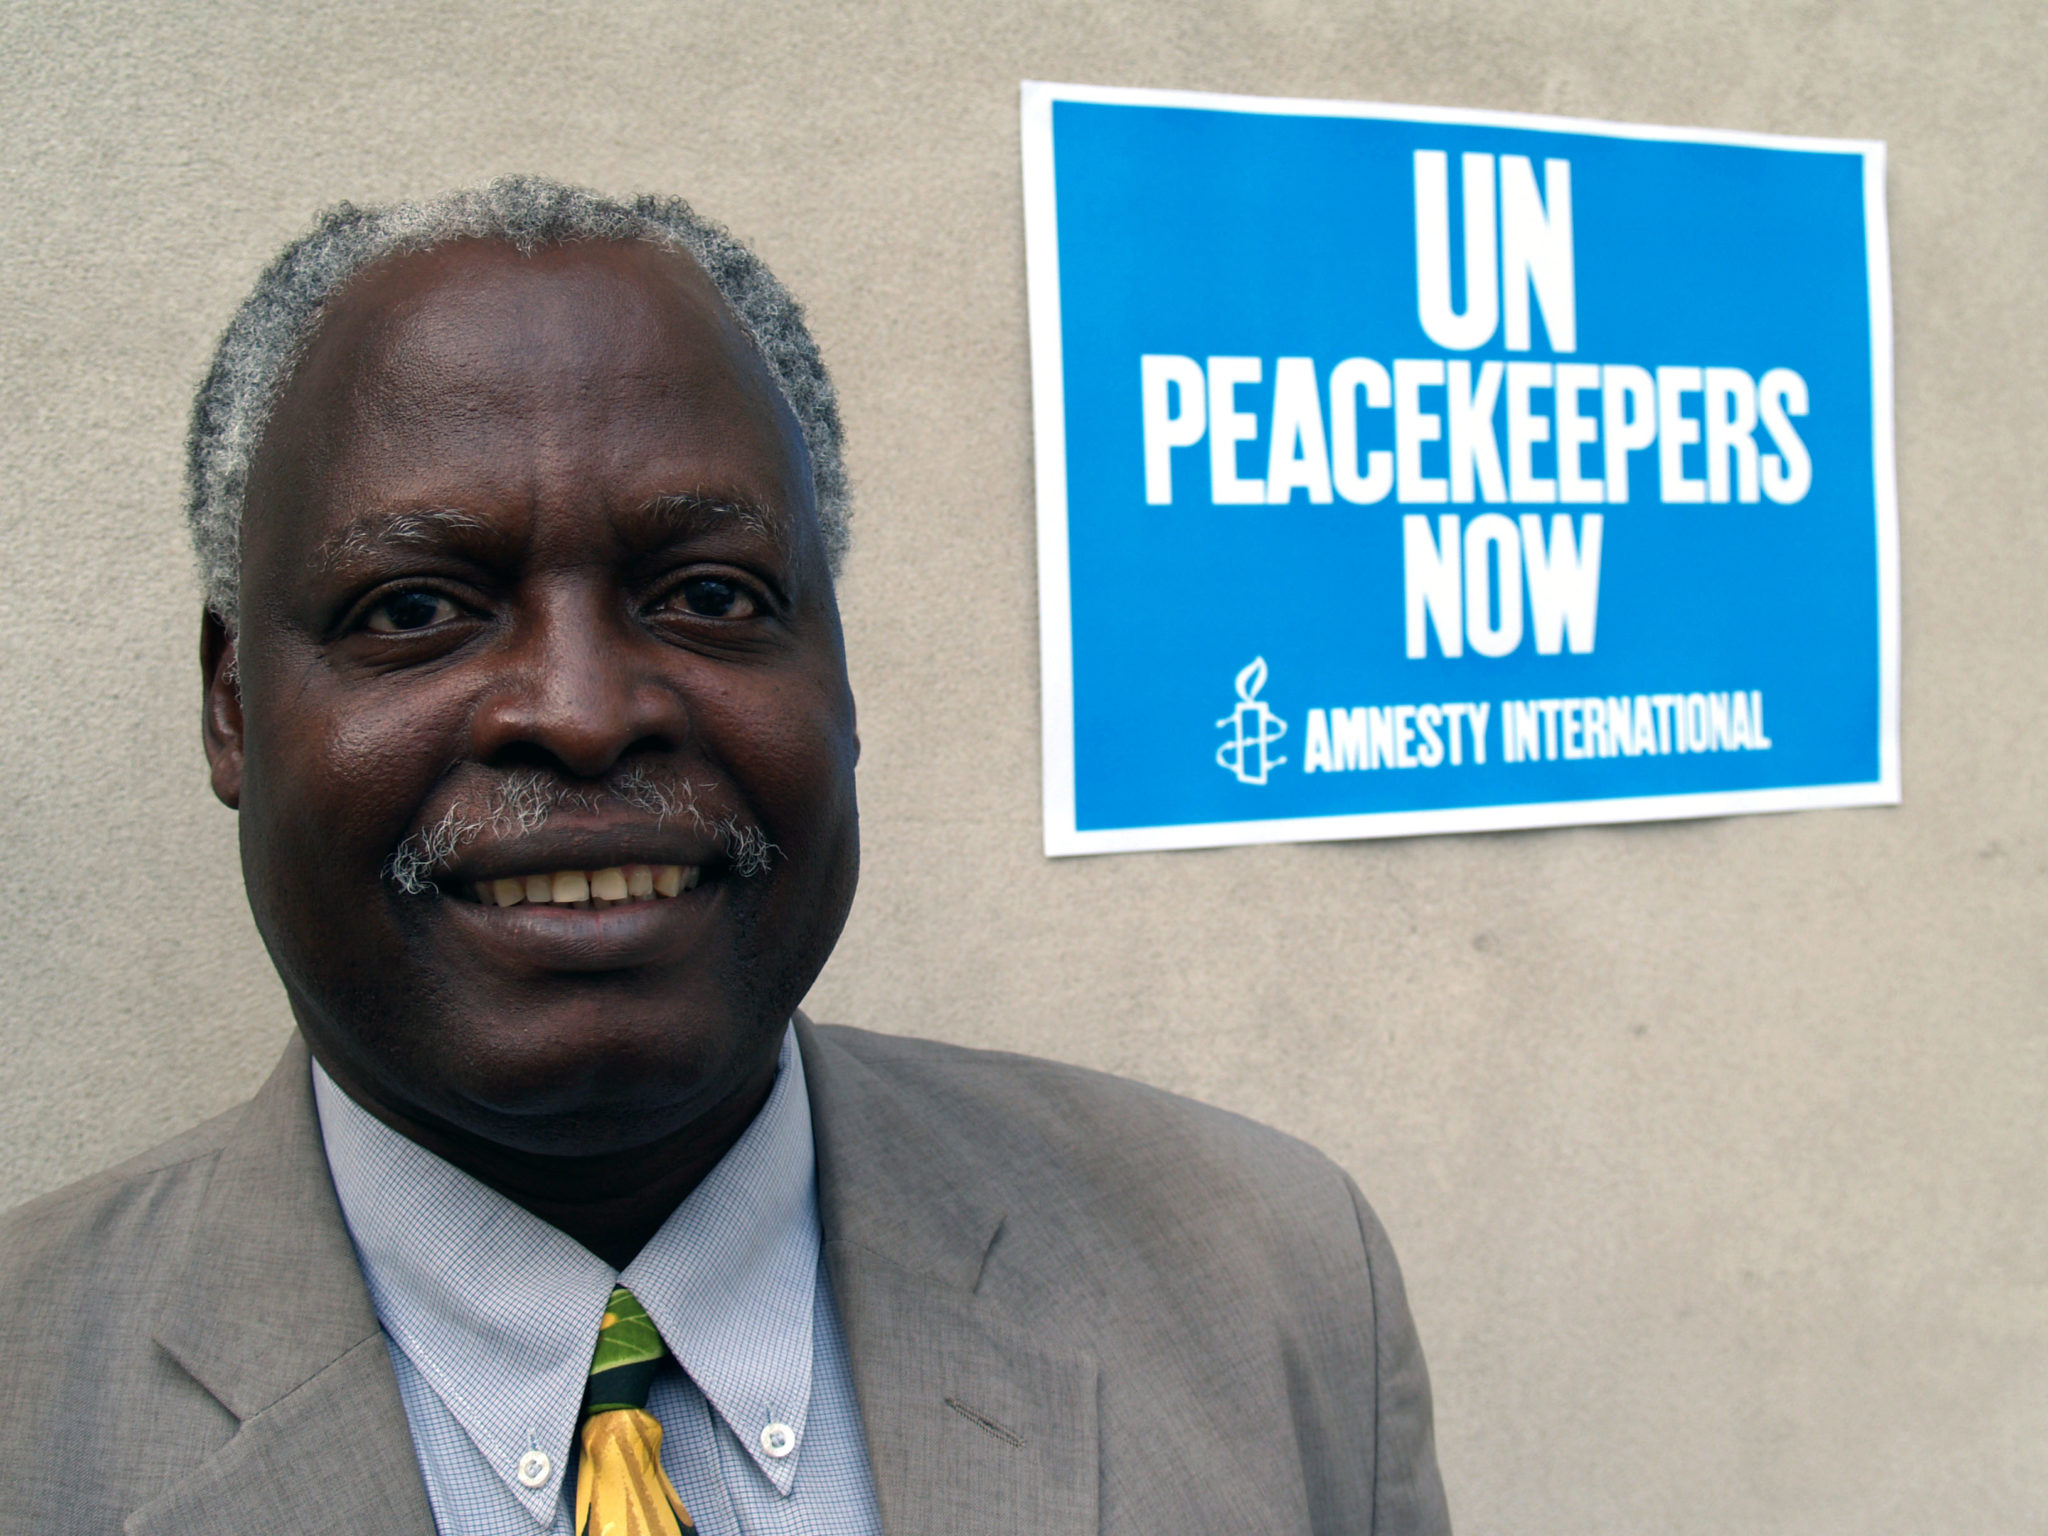 Good News: Human rights defenders, opposition members and activists released in Sudan